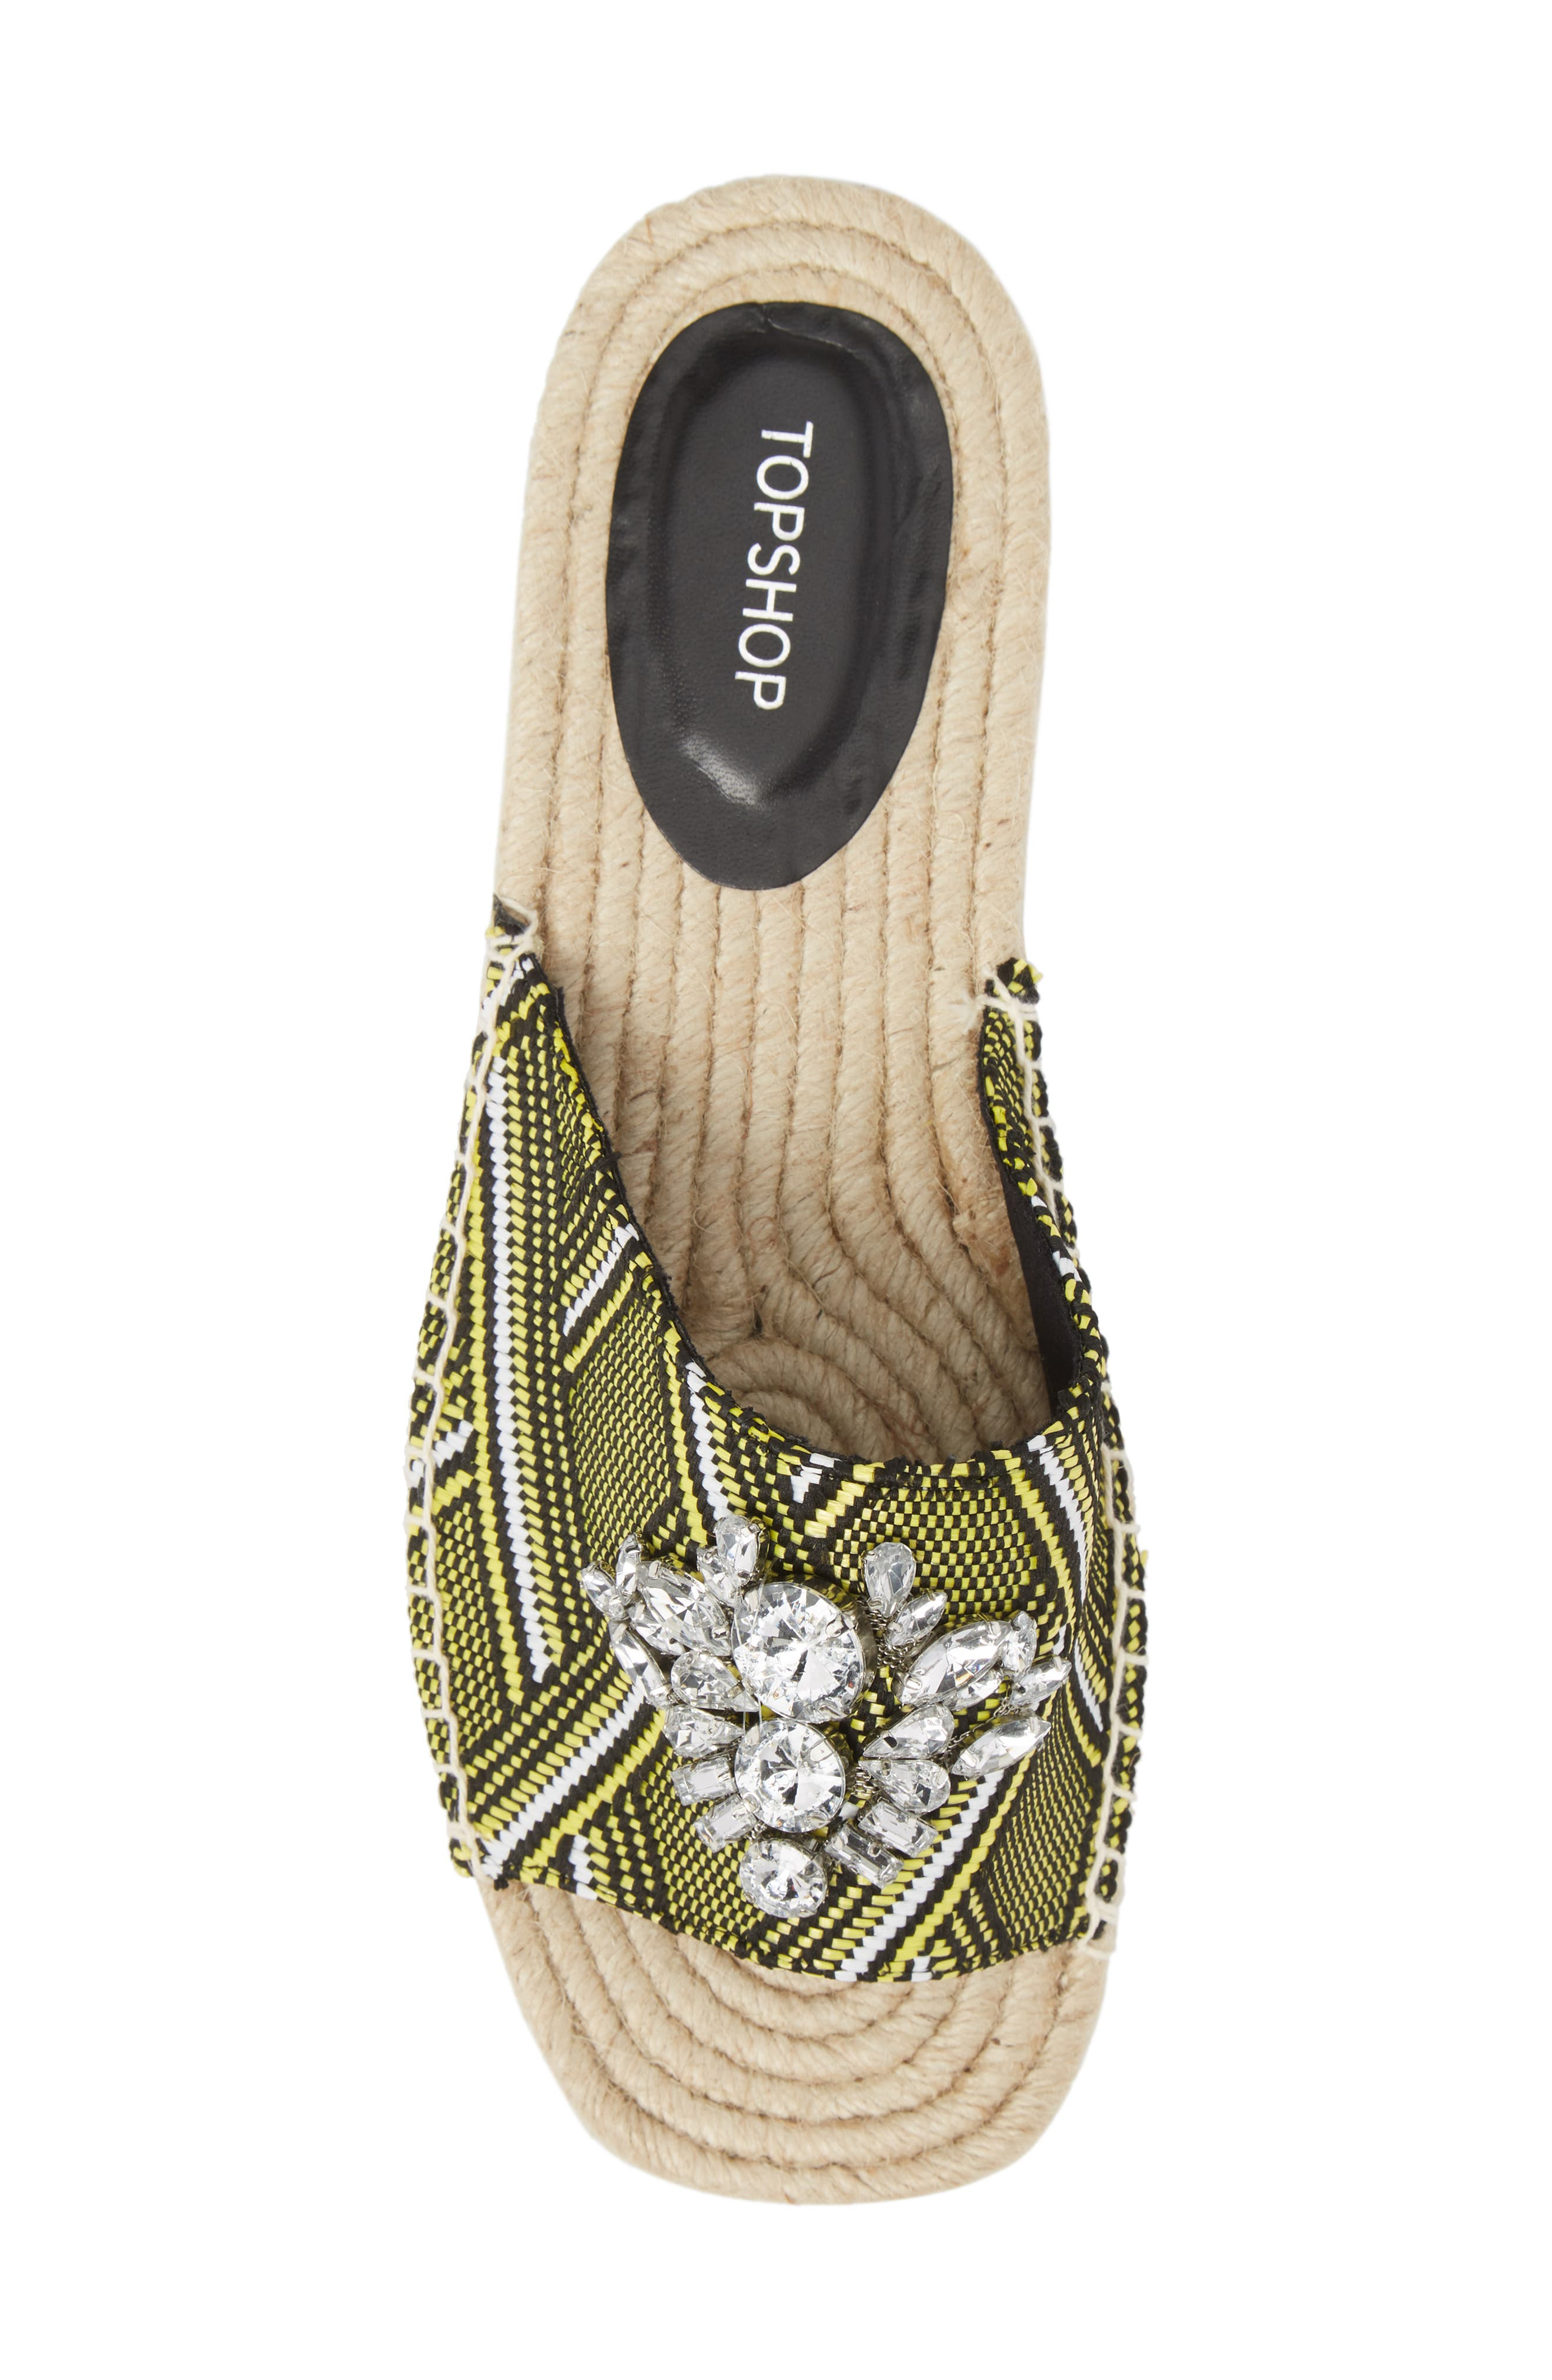 Hey Espadrille Square Slider Sandals,                             Alternate thumbnail 5, color,                             Yellow Multi